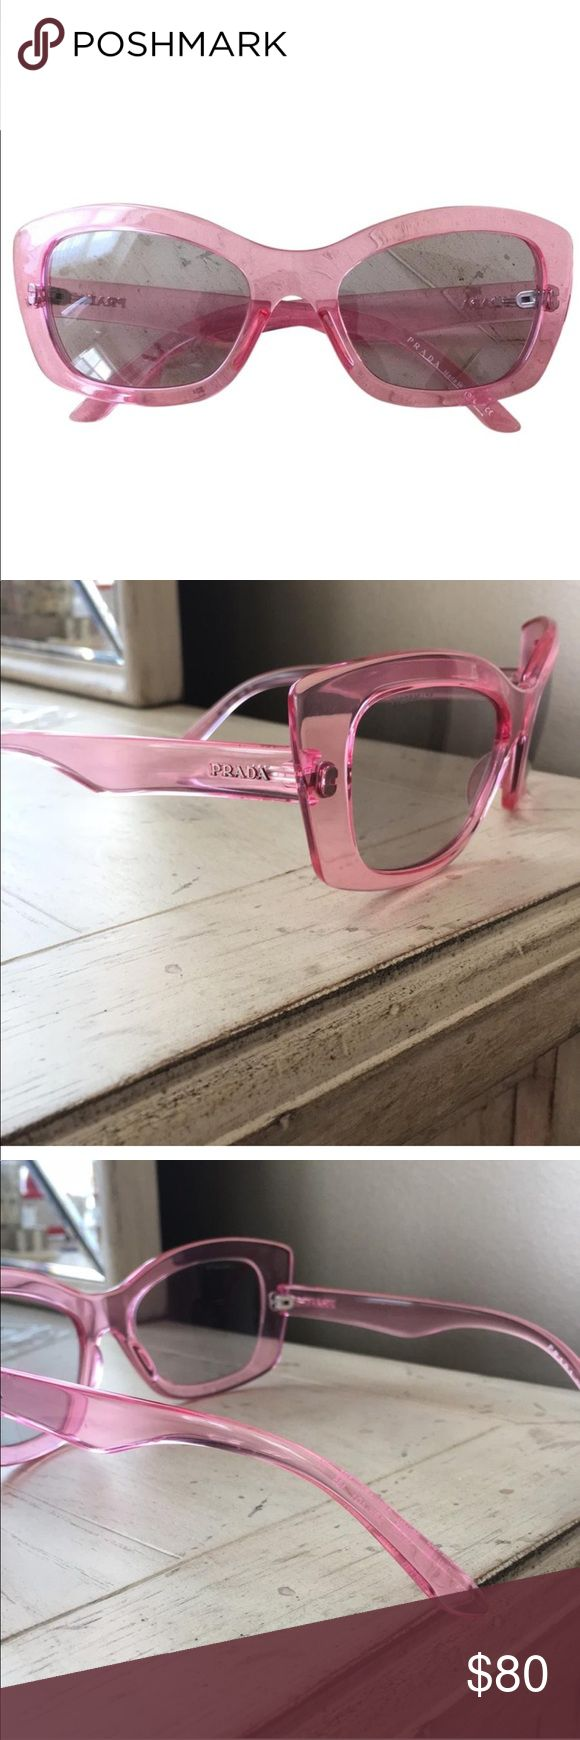 """Prada sunglasses Fun pink Prada cateye sunglasses! Only worn a couple times with no sign on wear. Comes with case and cloth. """"Prada"""" lightly etched in upper corner of the lens- tried to capture it in a picture but it is difficult to see. Prada Accessories Sunglasses"""